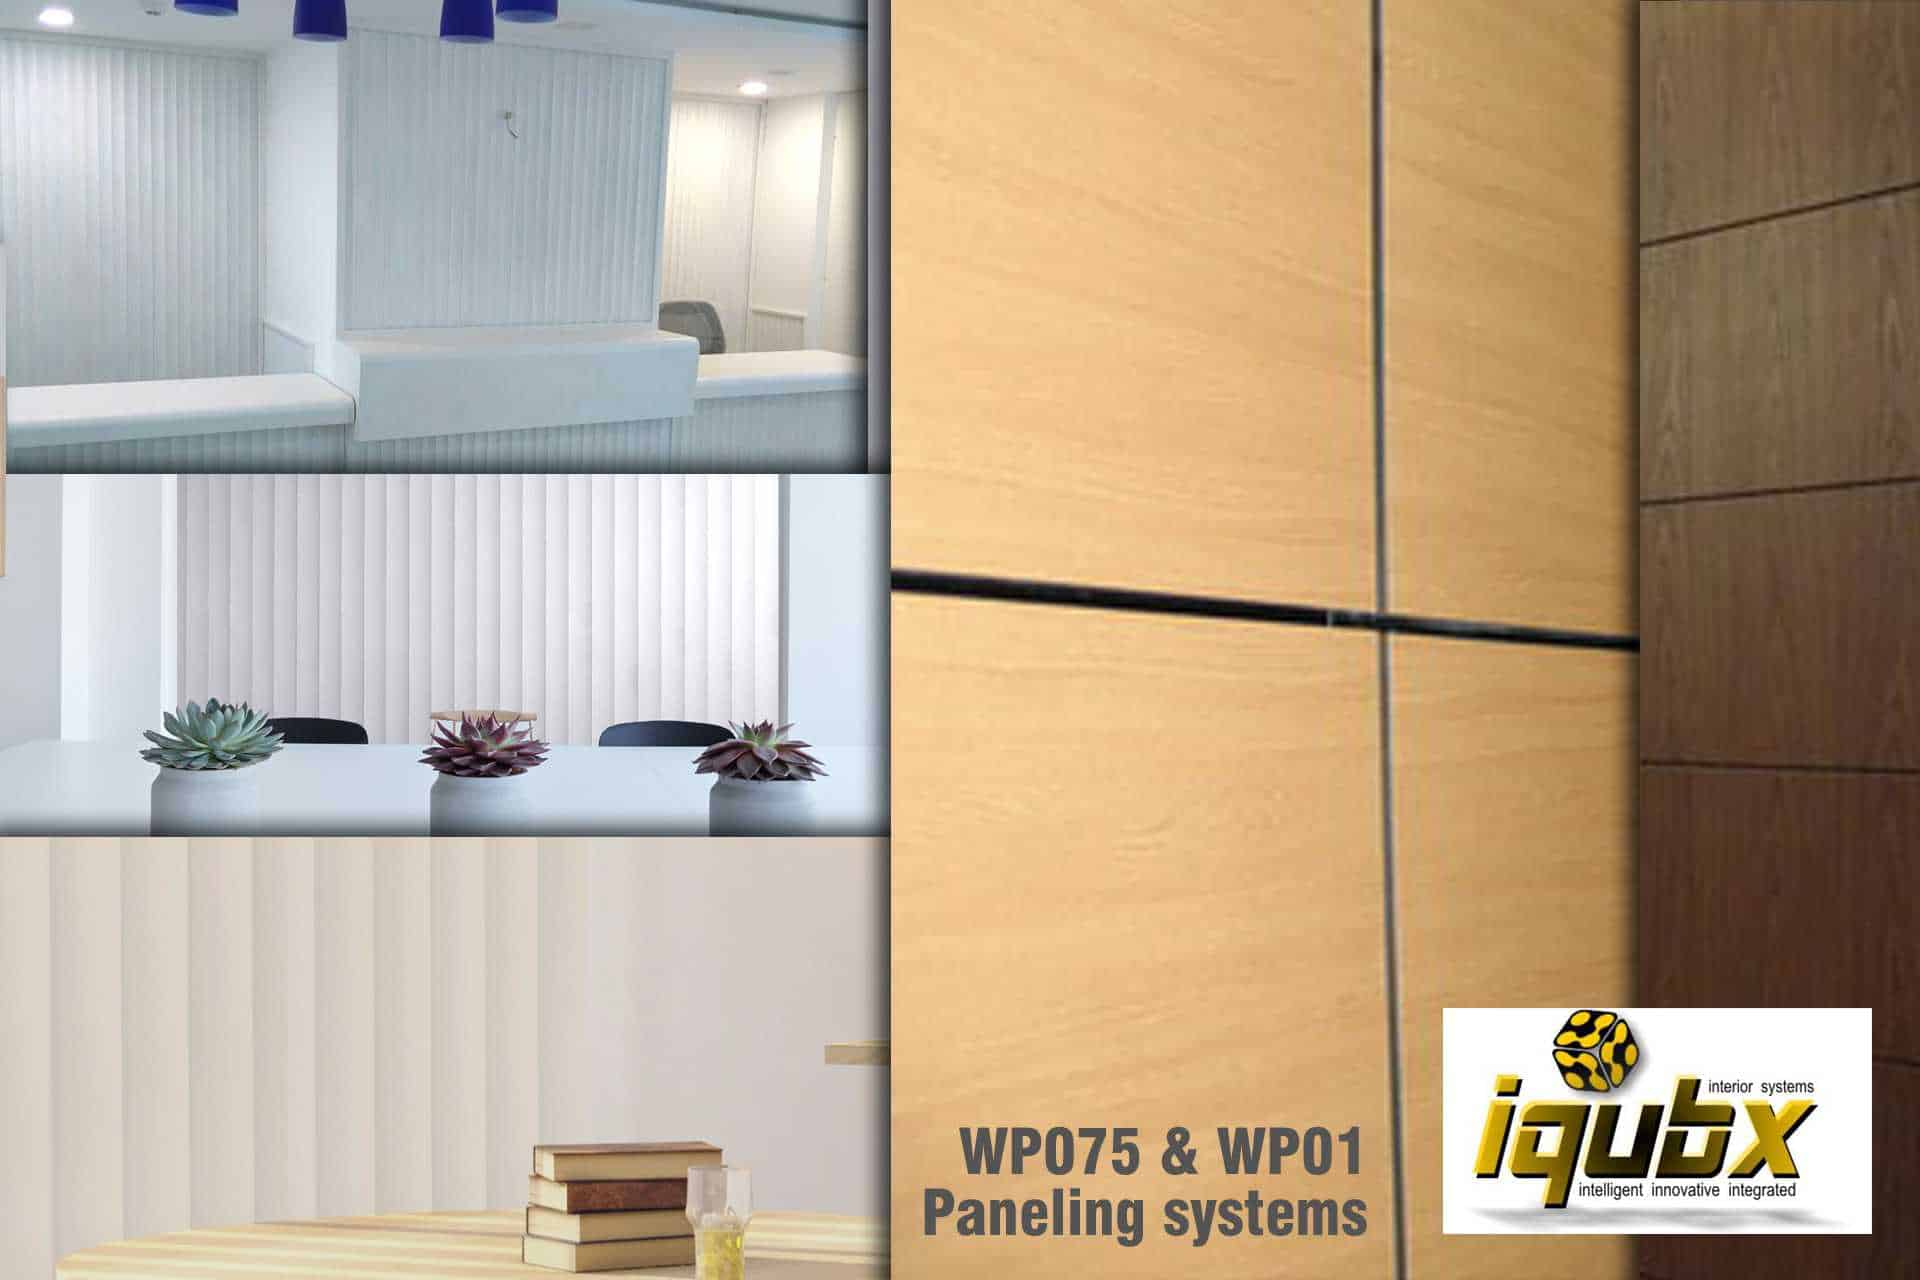 Iqubx Panelling And Parion Systems Are Versatile Can Take Various Finishes